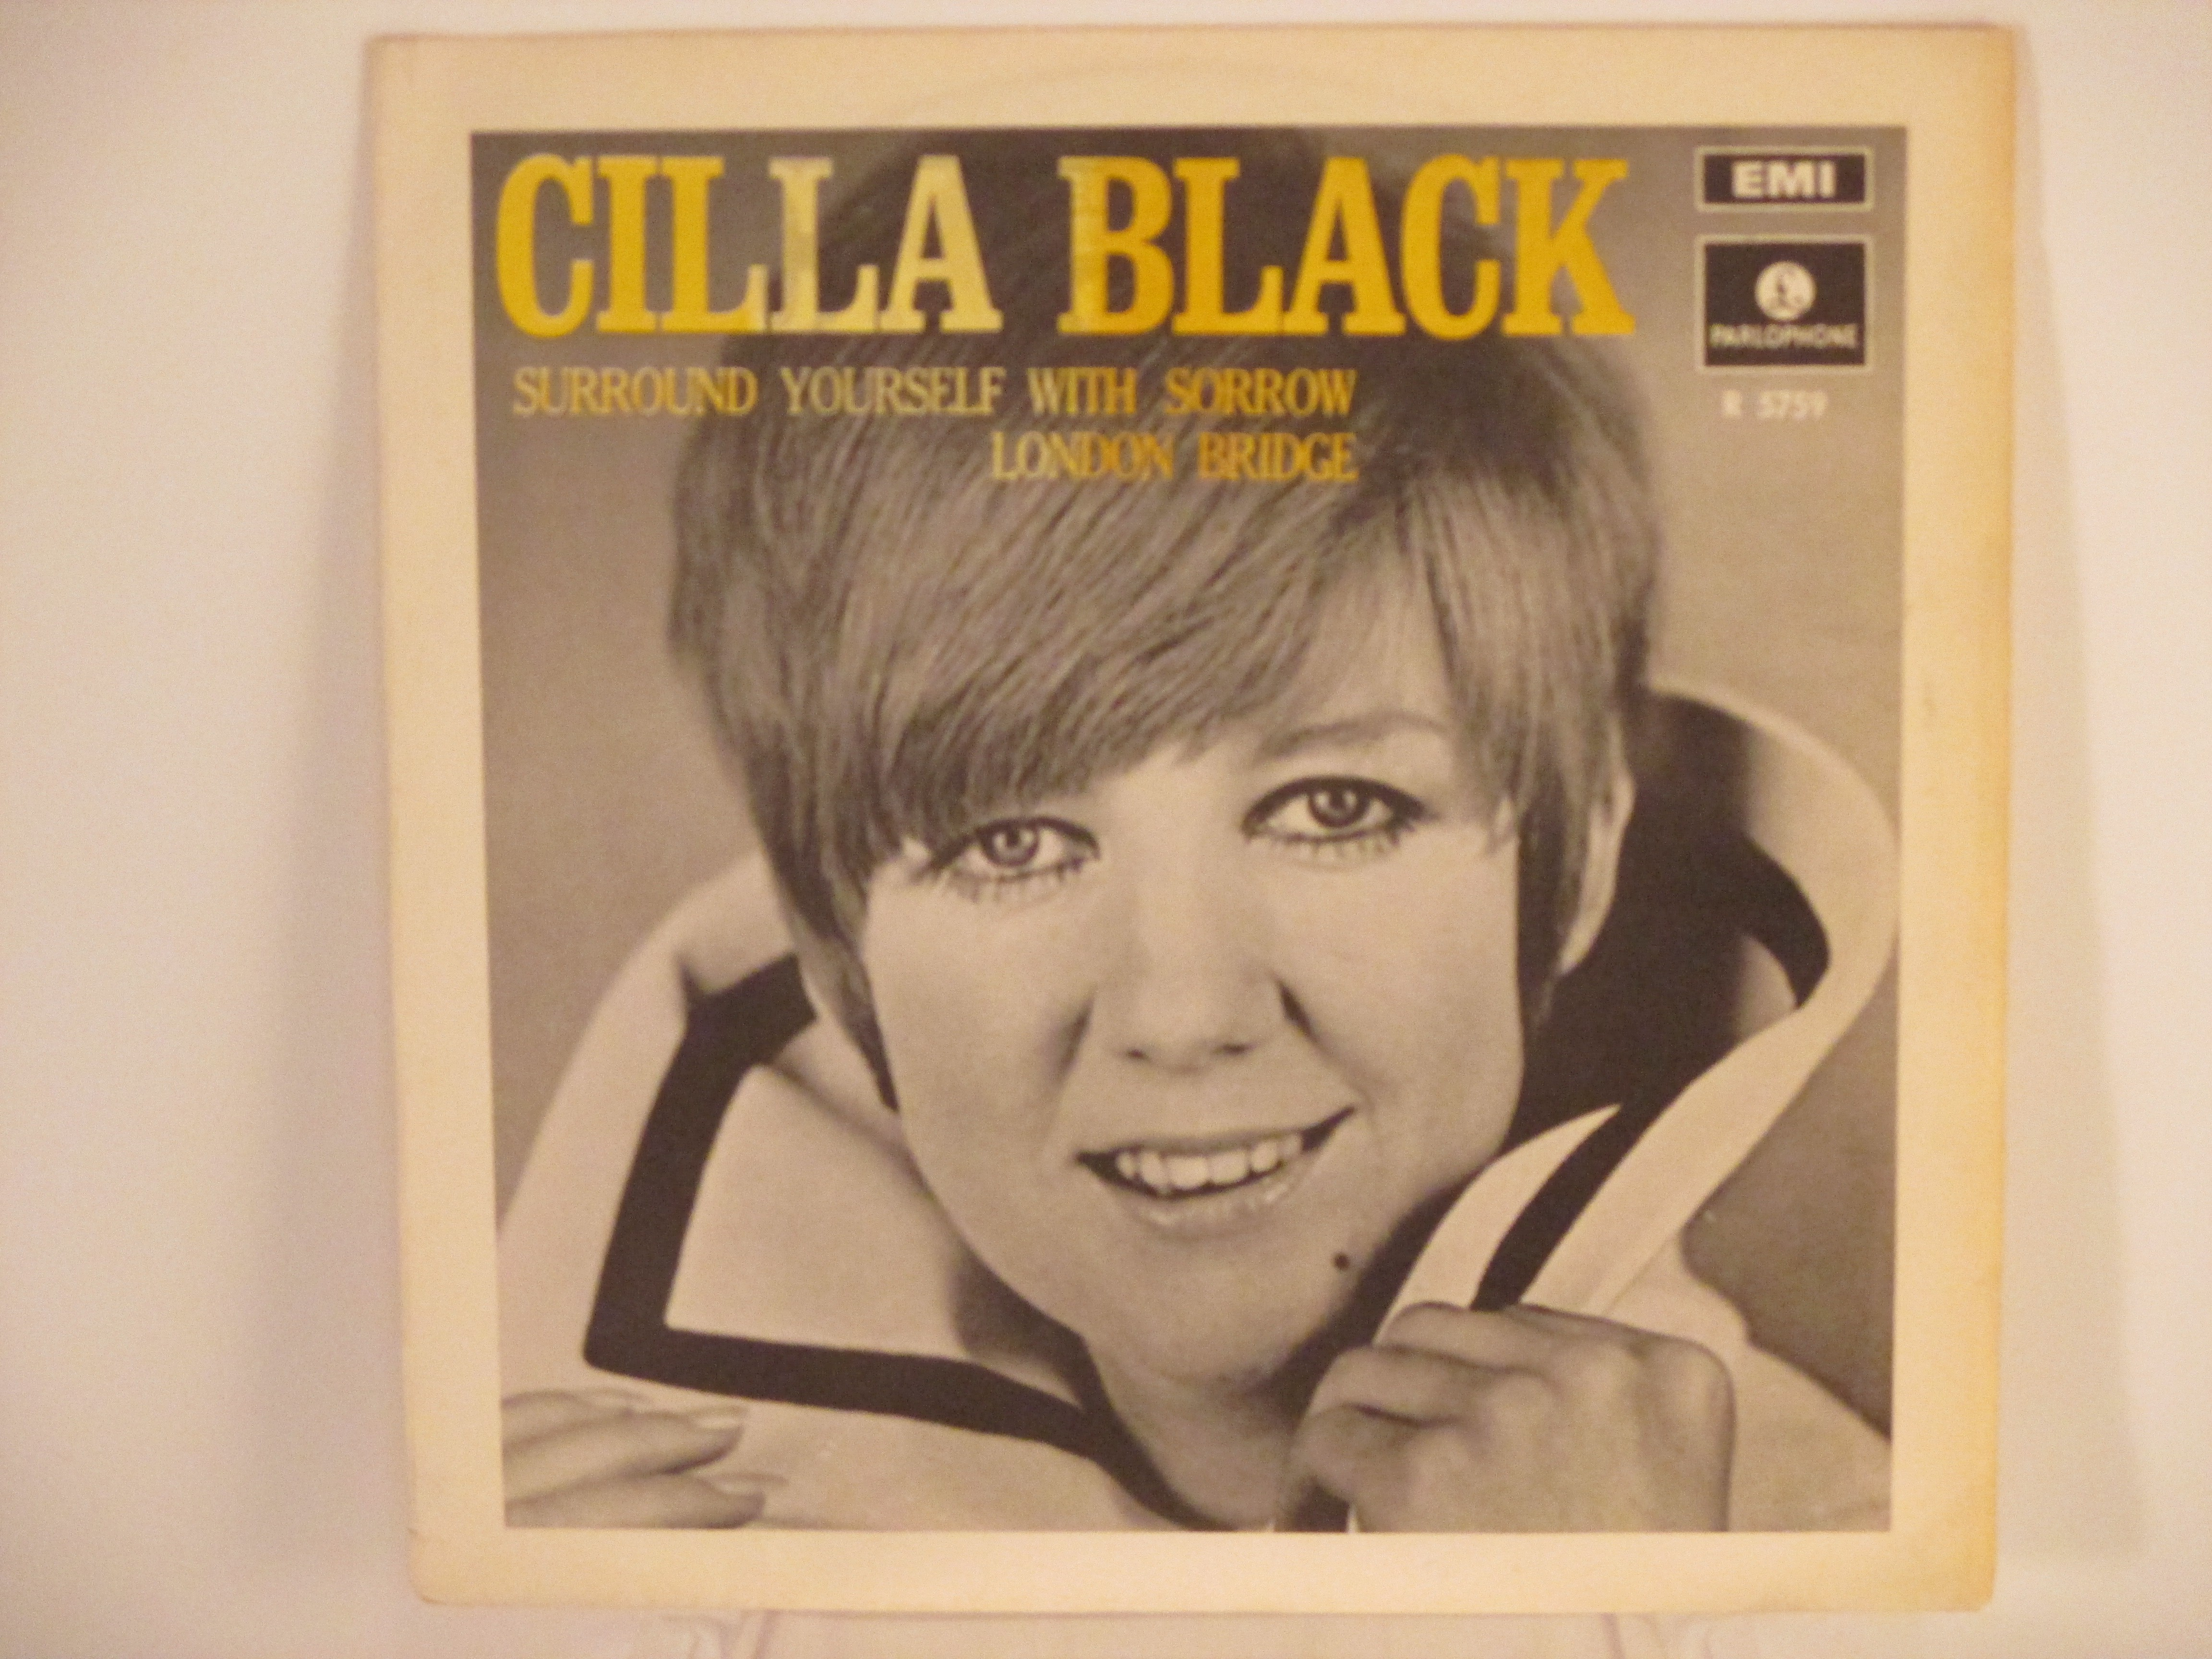 CILLA BLACK : Surround yourself with sorrow / London bridge